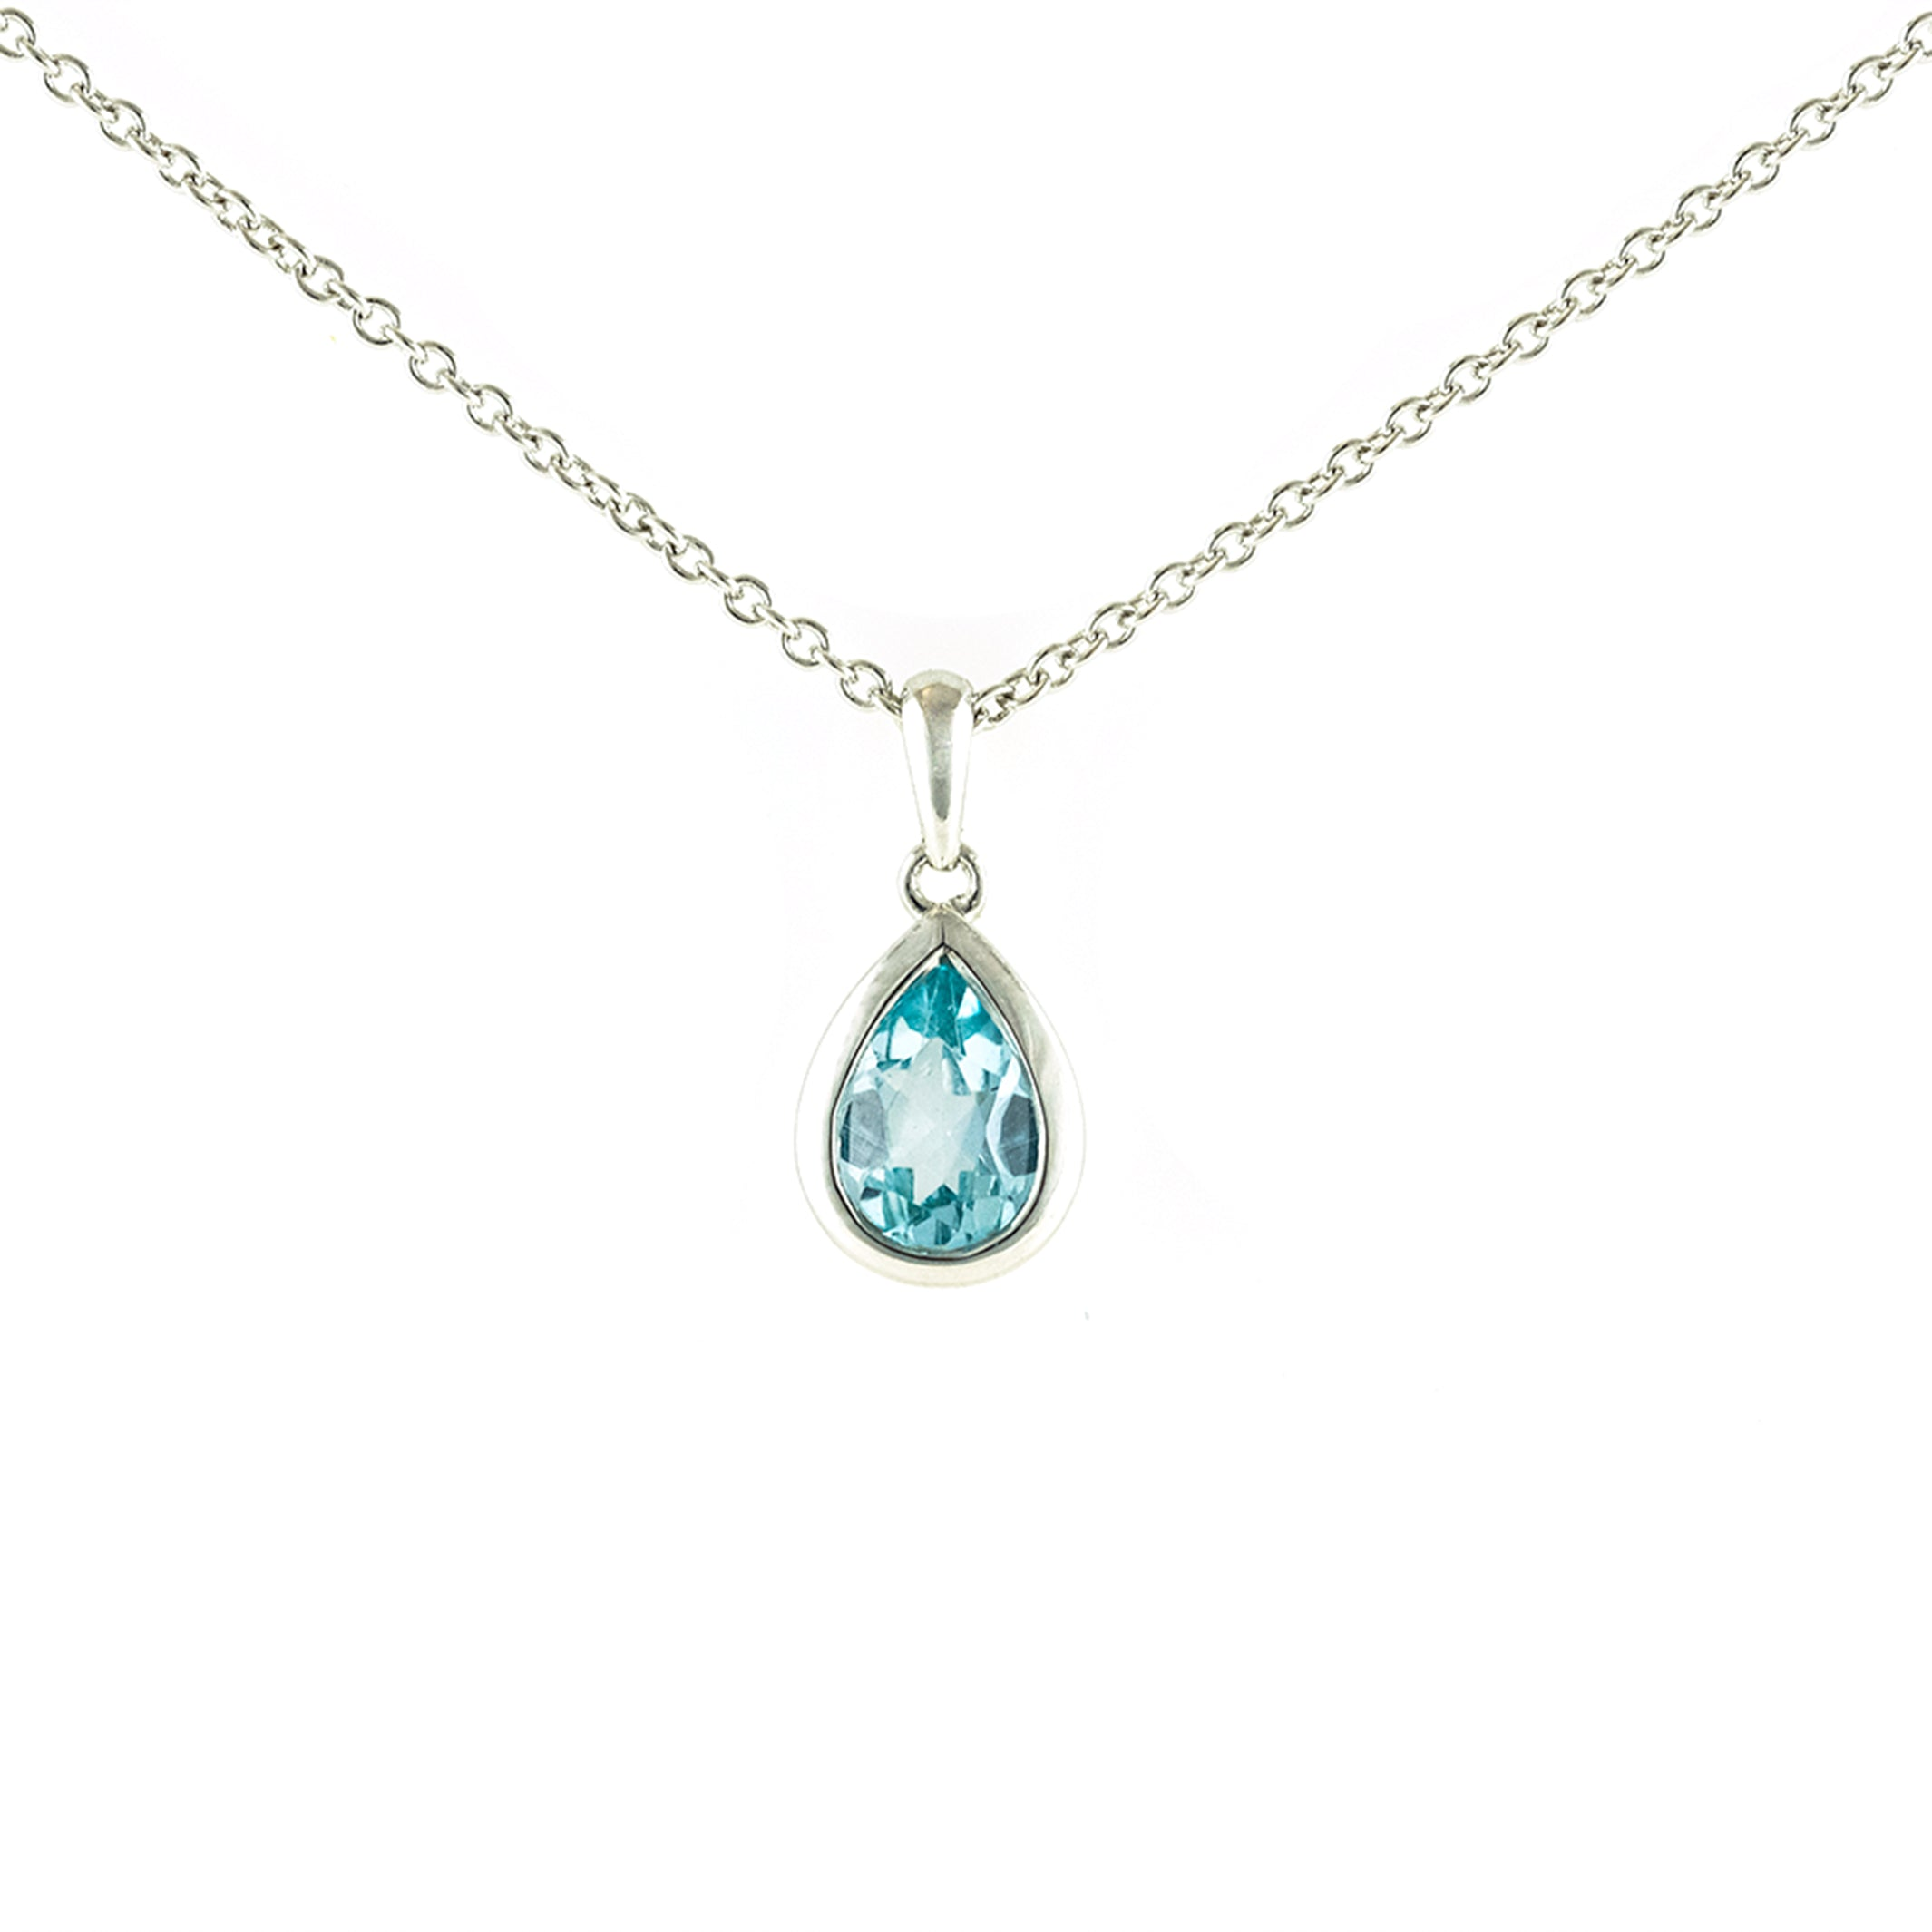 Pear shaped blue topaz set in 9ct white gold pendant